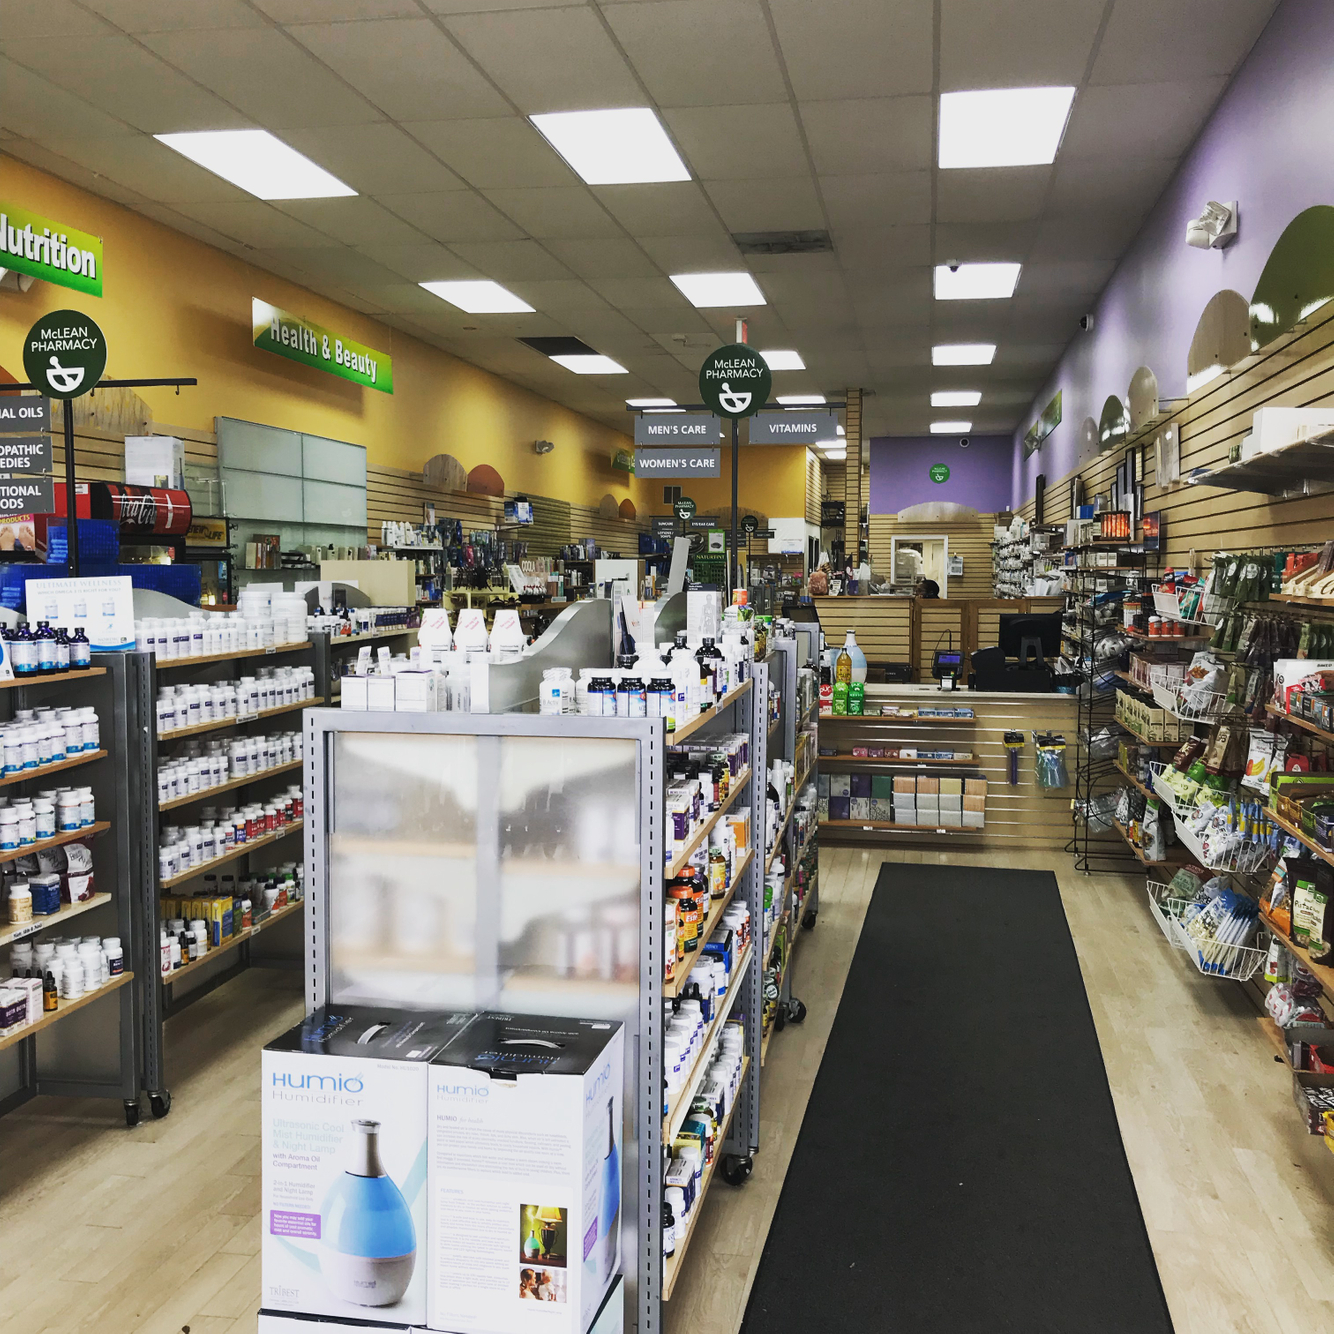 more photos fe3c5 a5db5 Some services we offer at the pharmacy include compounding, medical supplies,  herbs, vitamins, supplements, delivery, and durable medical equipment.